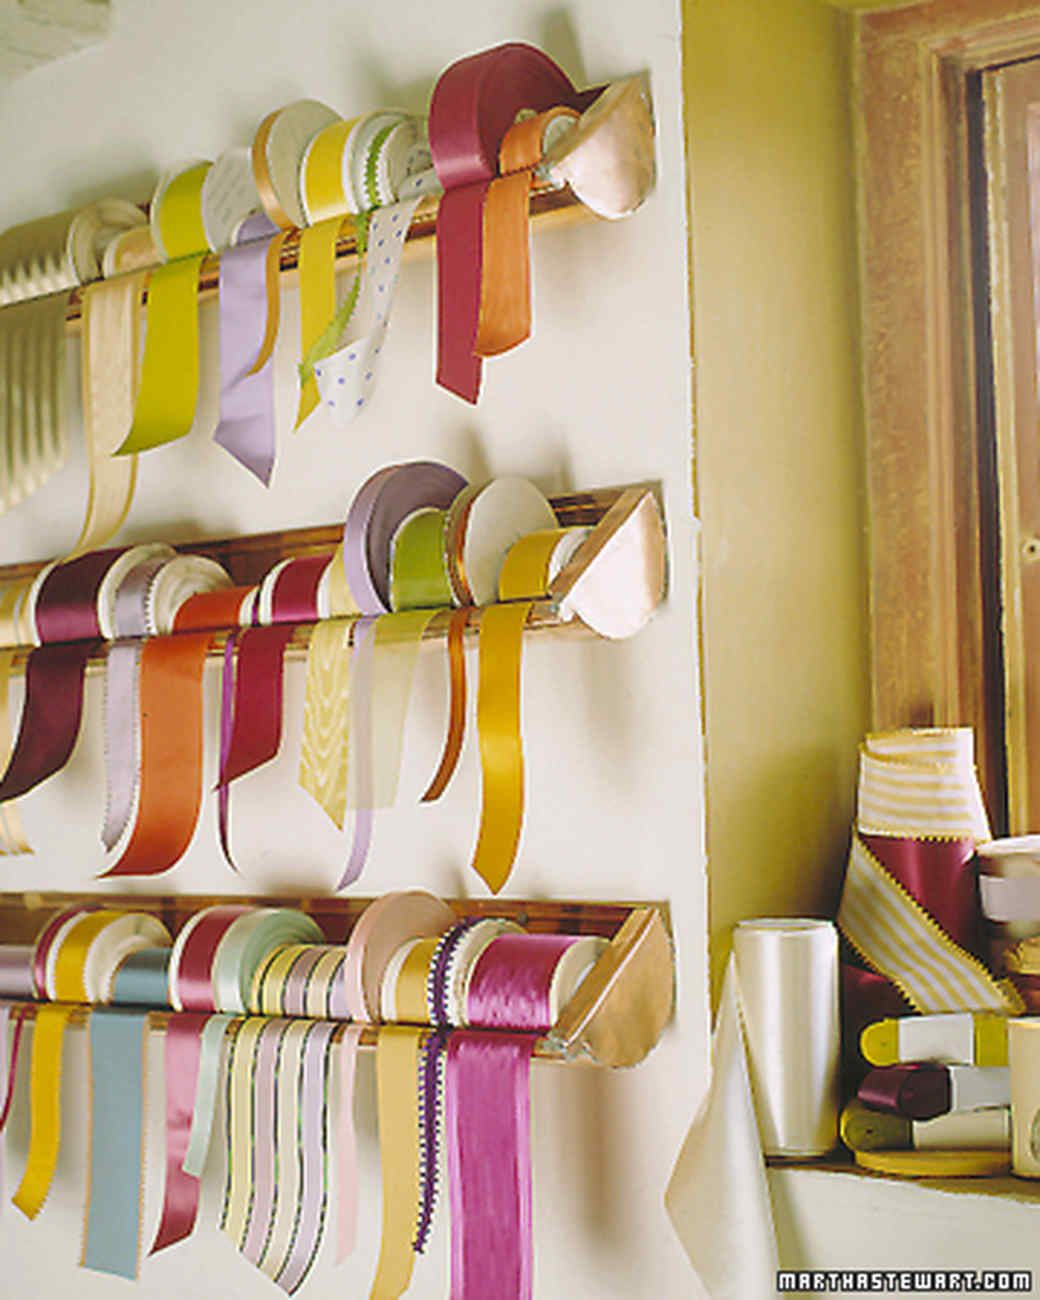 51 Luxury Living Rooms And Tips You Could Use From Them: Ribbon Storage, Sewing Room